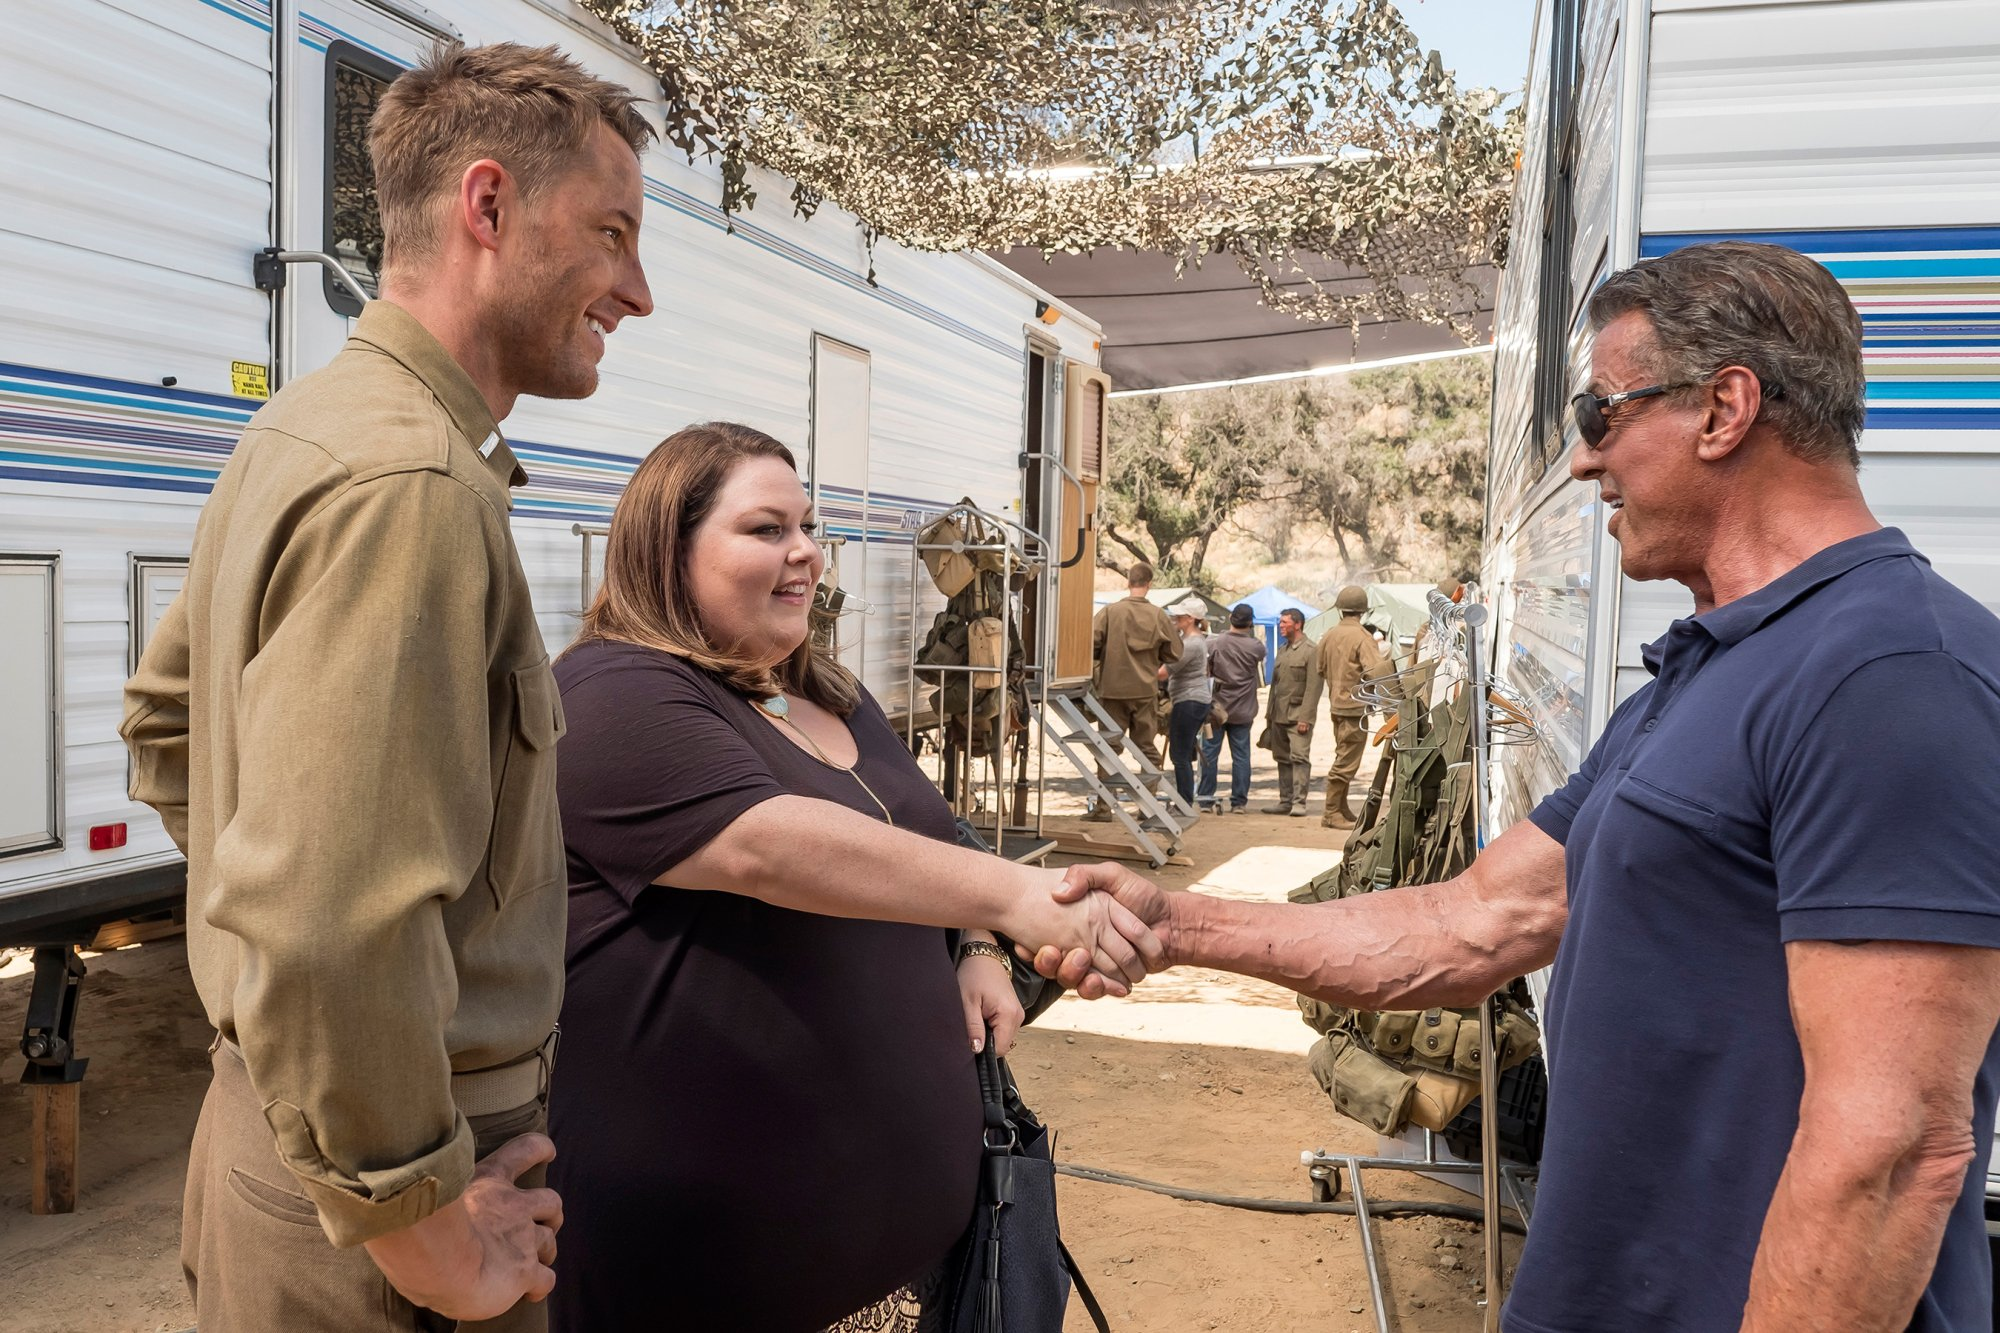 This Is Us: Sylvester Stallone, Chrissy Metz e Justin Hartley nell'episodio Déjà Vu